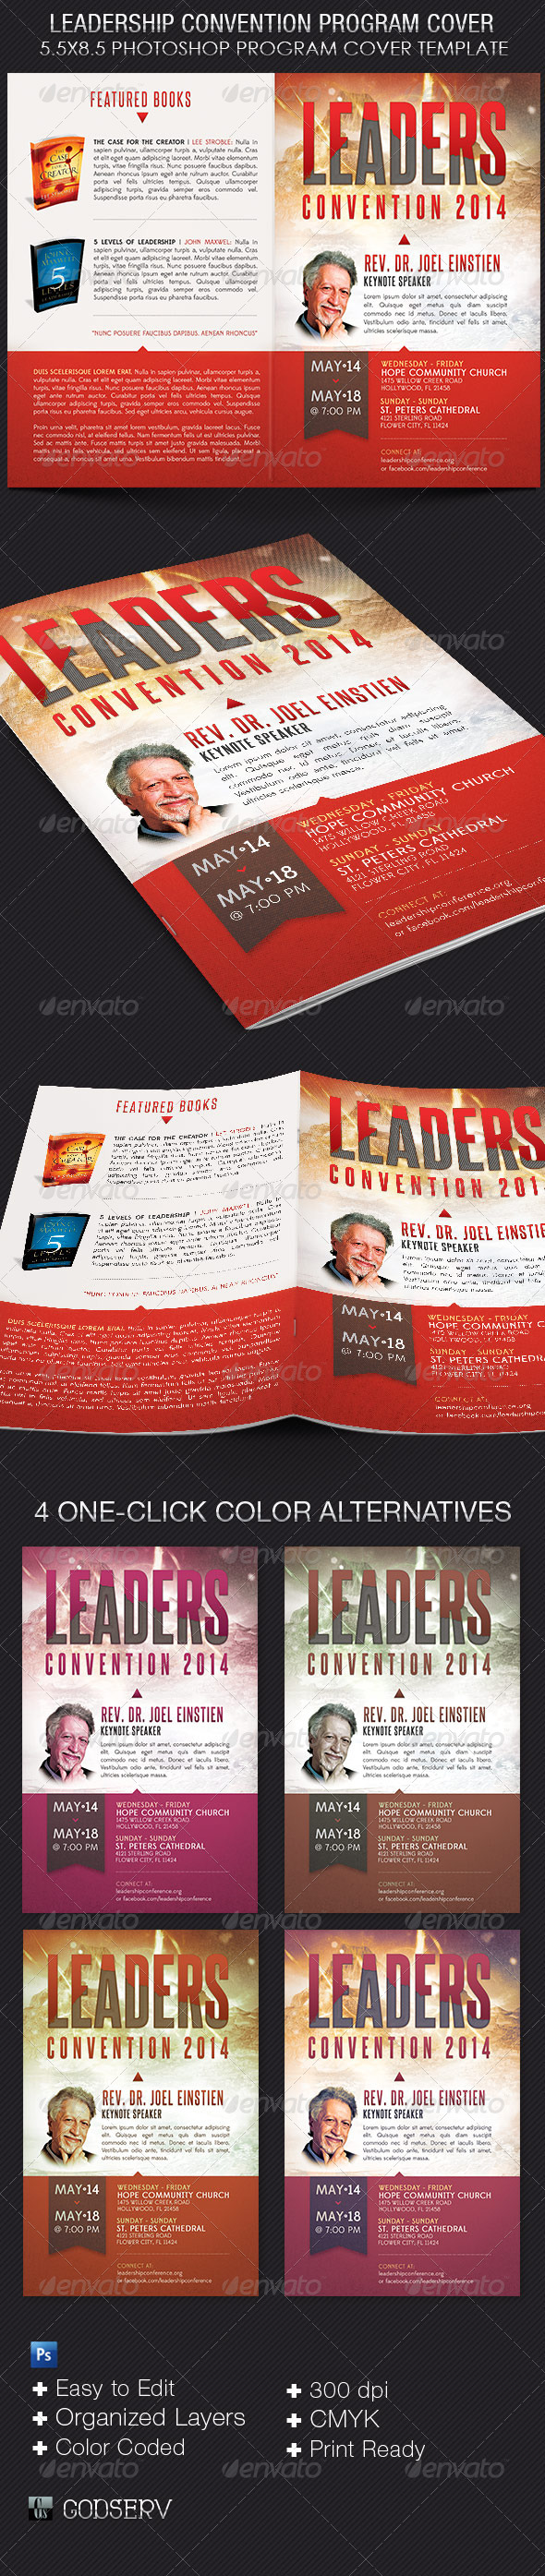 GraphicRiver Leadership Convention Program Cover Template 7809227